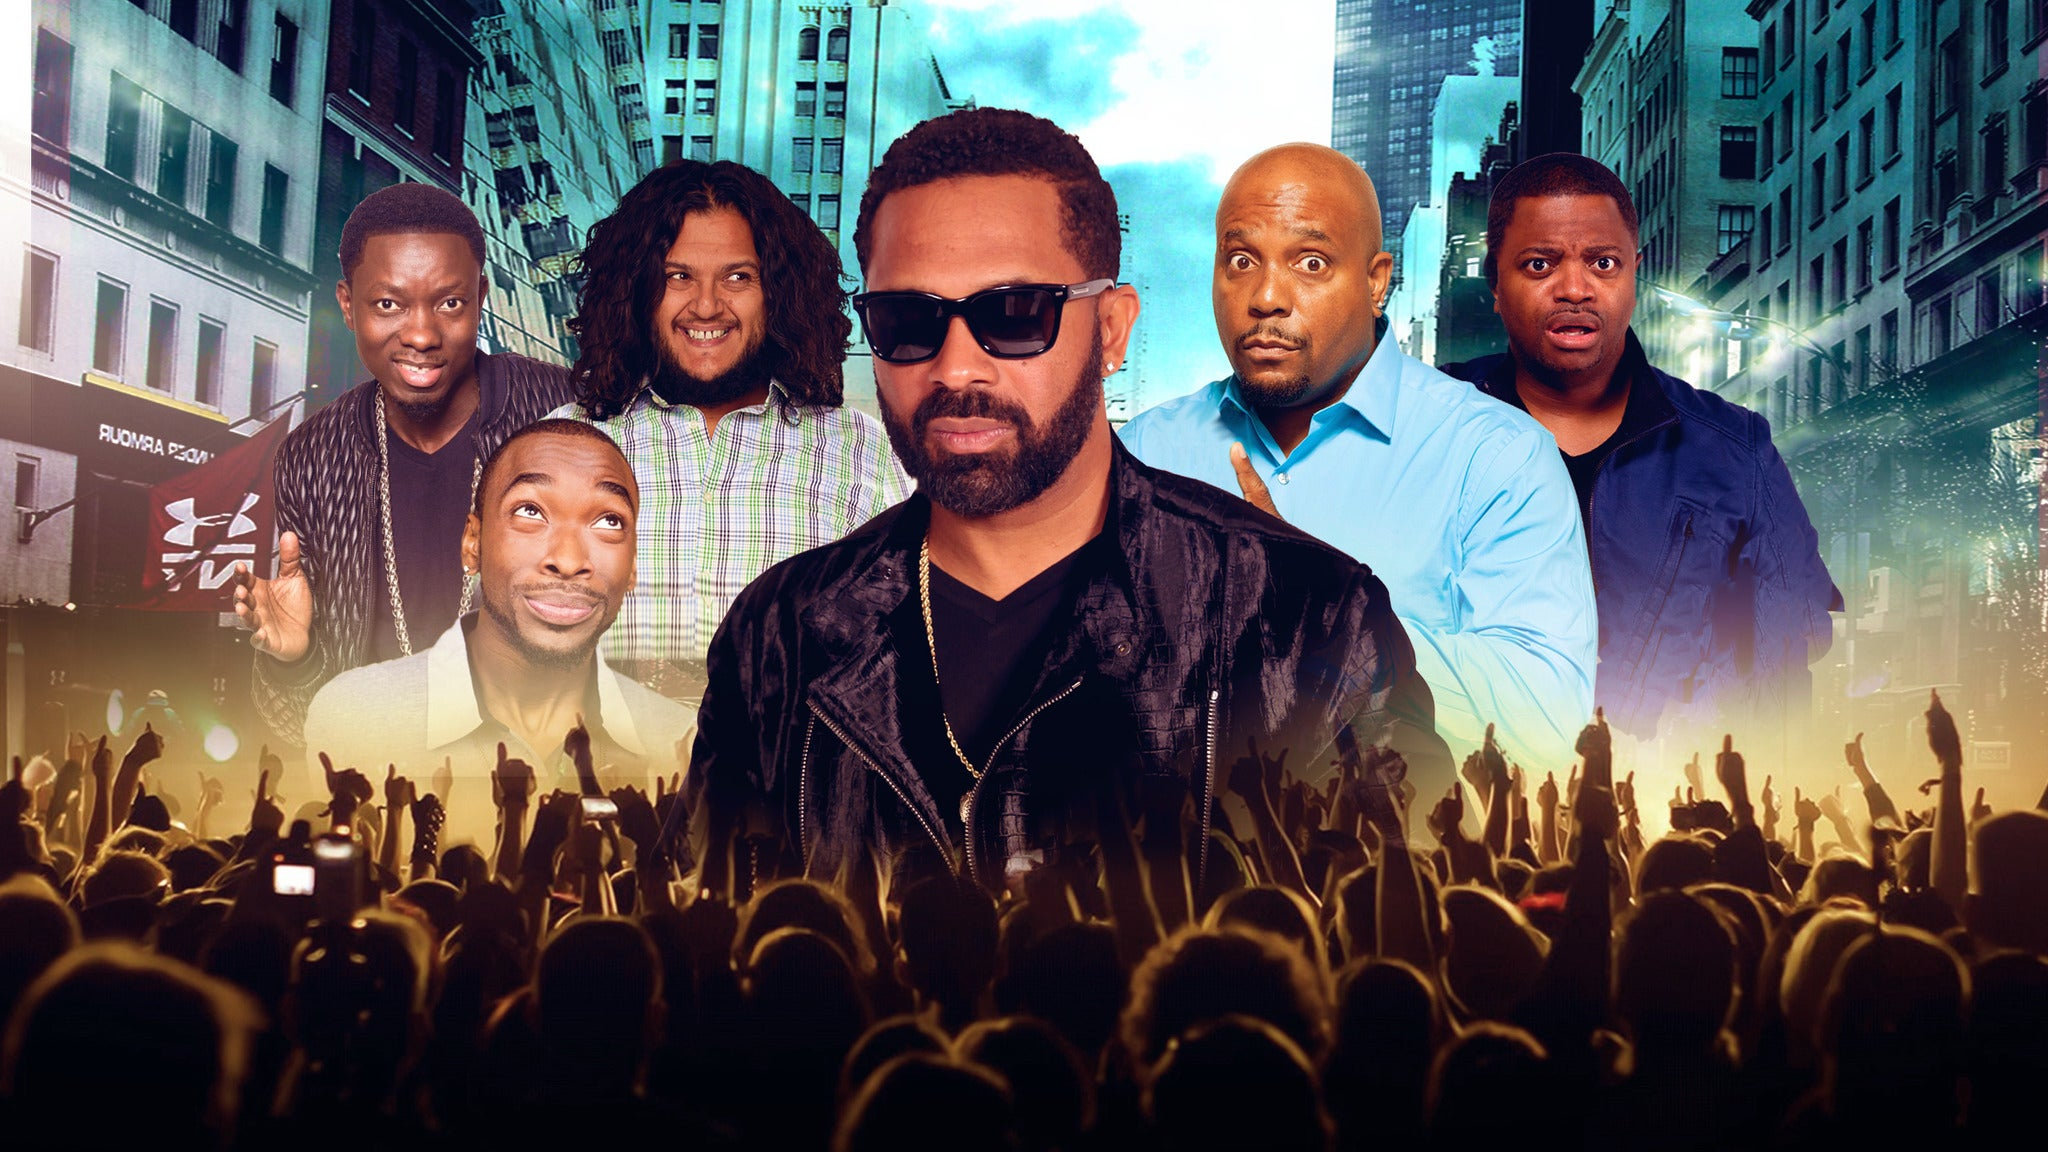 Festival of Laughs - Miami at James L Knight Center